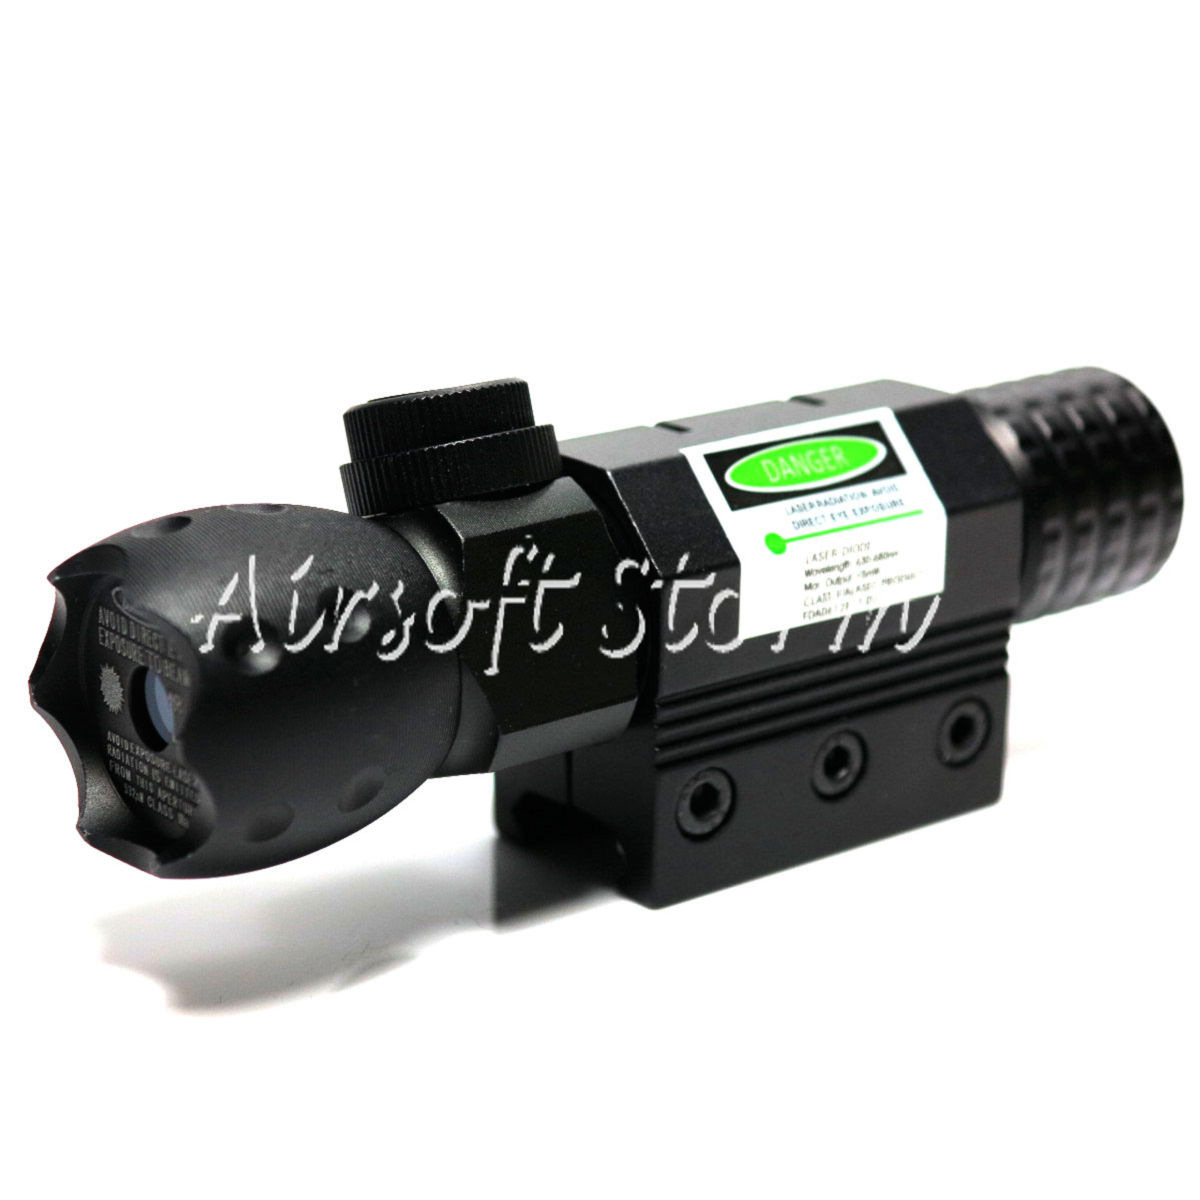 LXGD Tactical Gear Rifle AEG Green Laser Tactical Head Sight Pointer JG-021